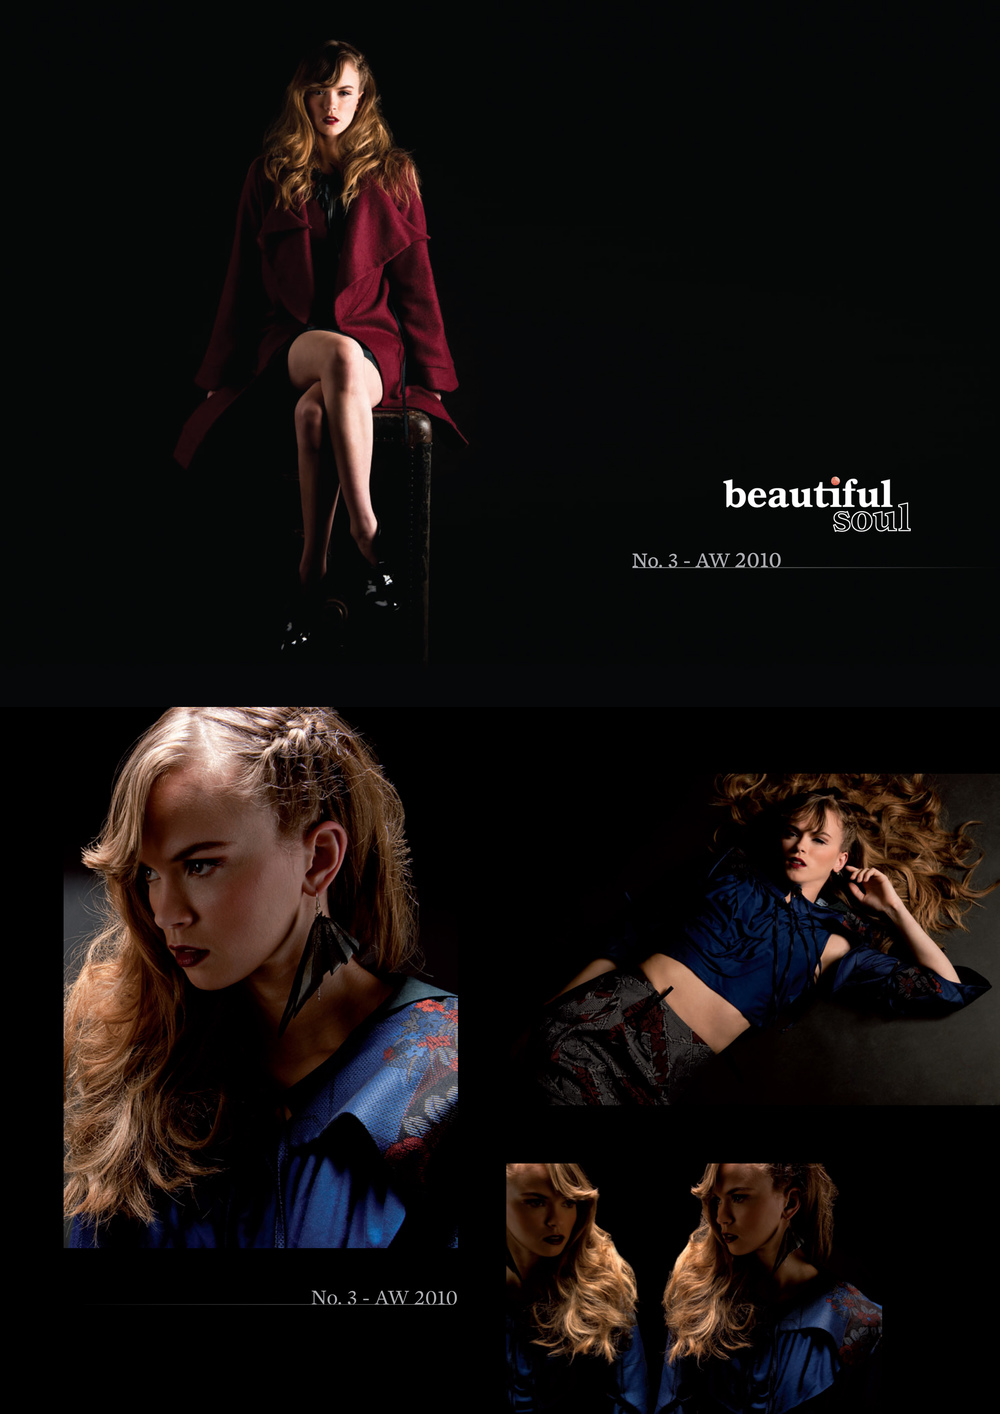 Beautiful Soul lookbook